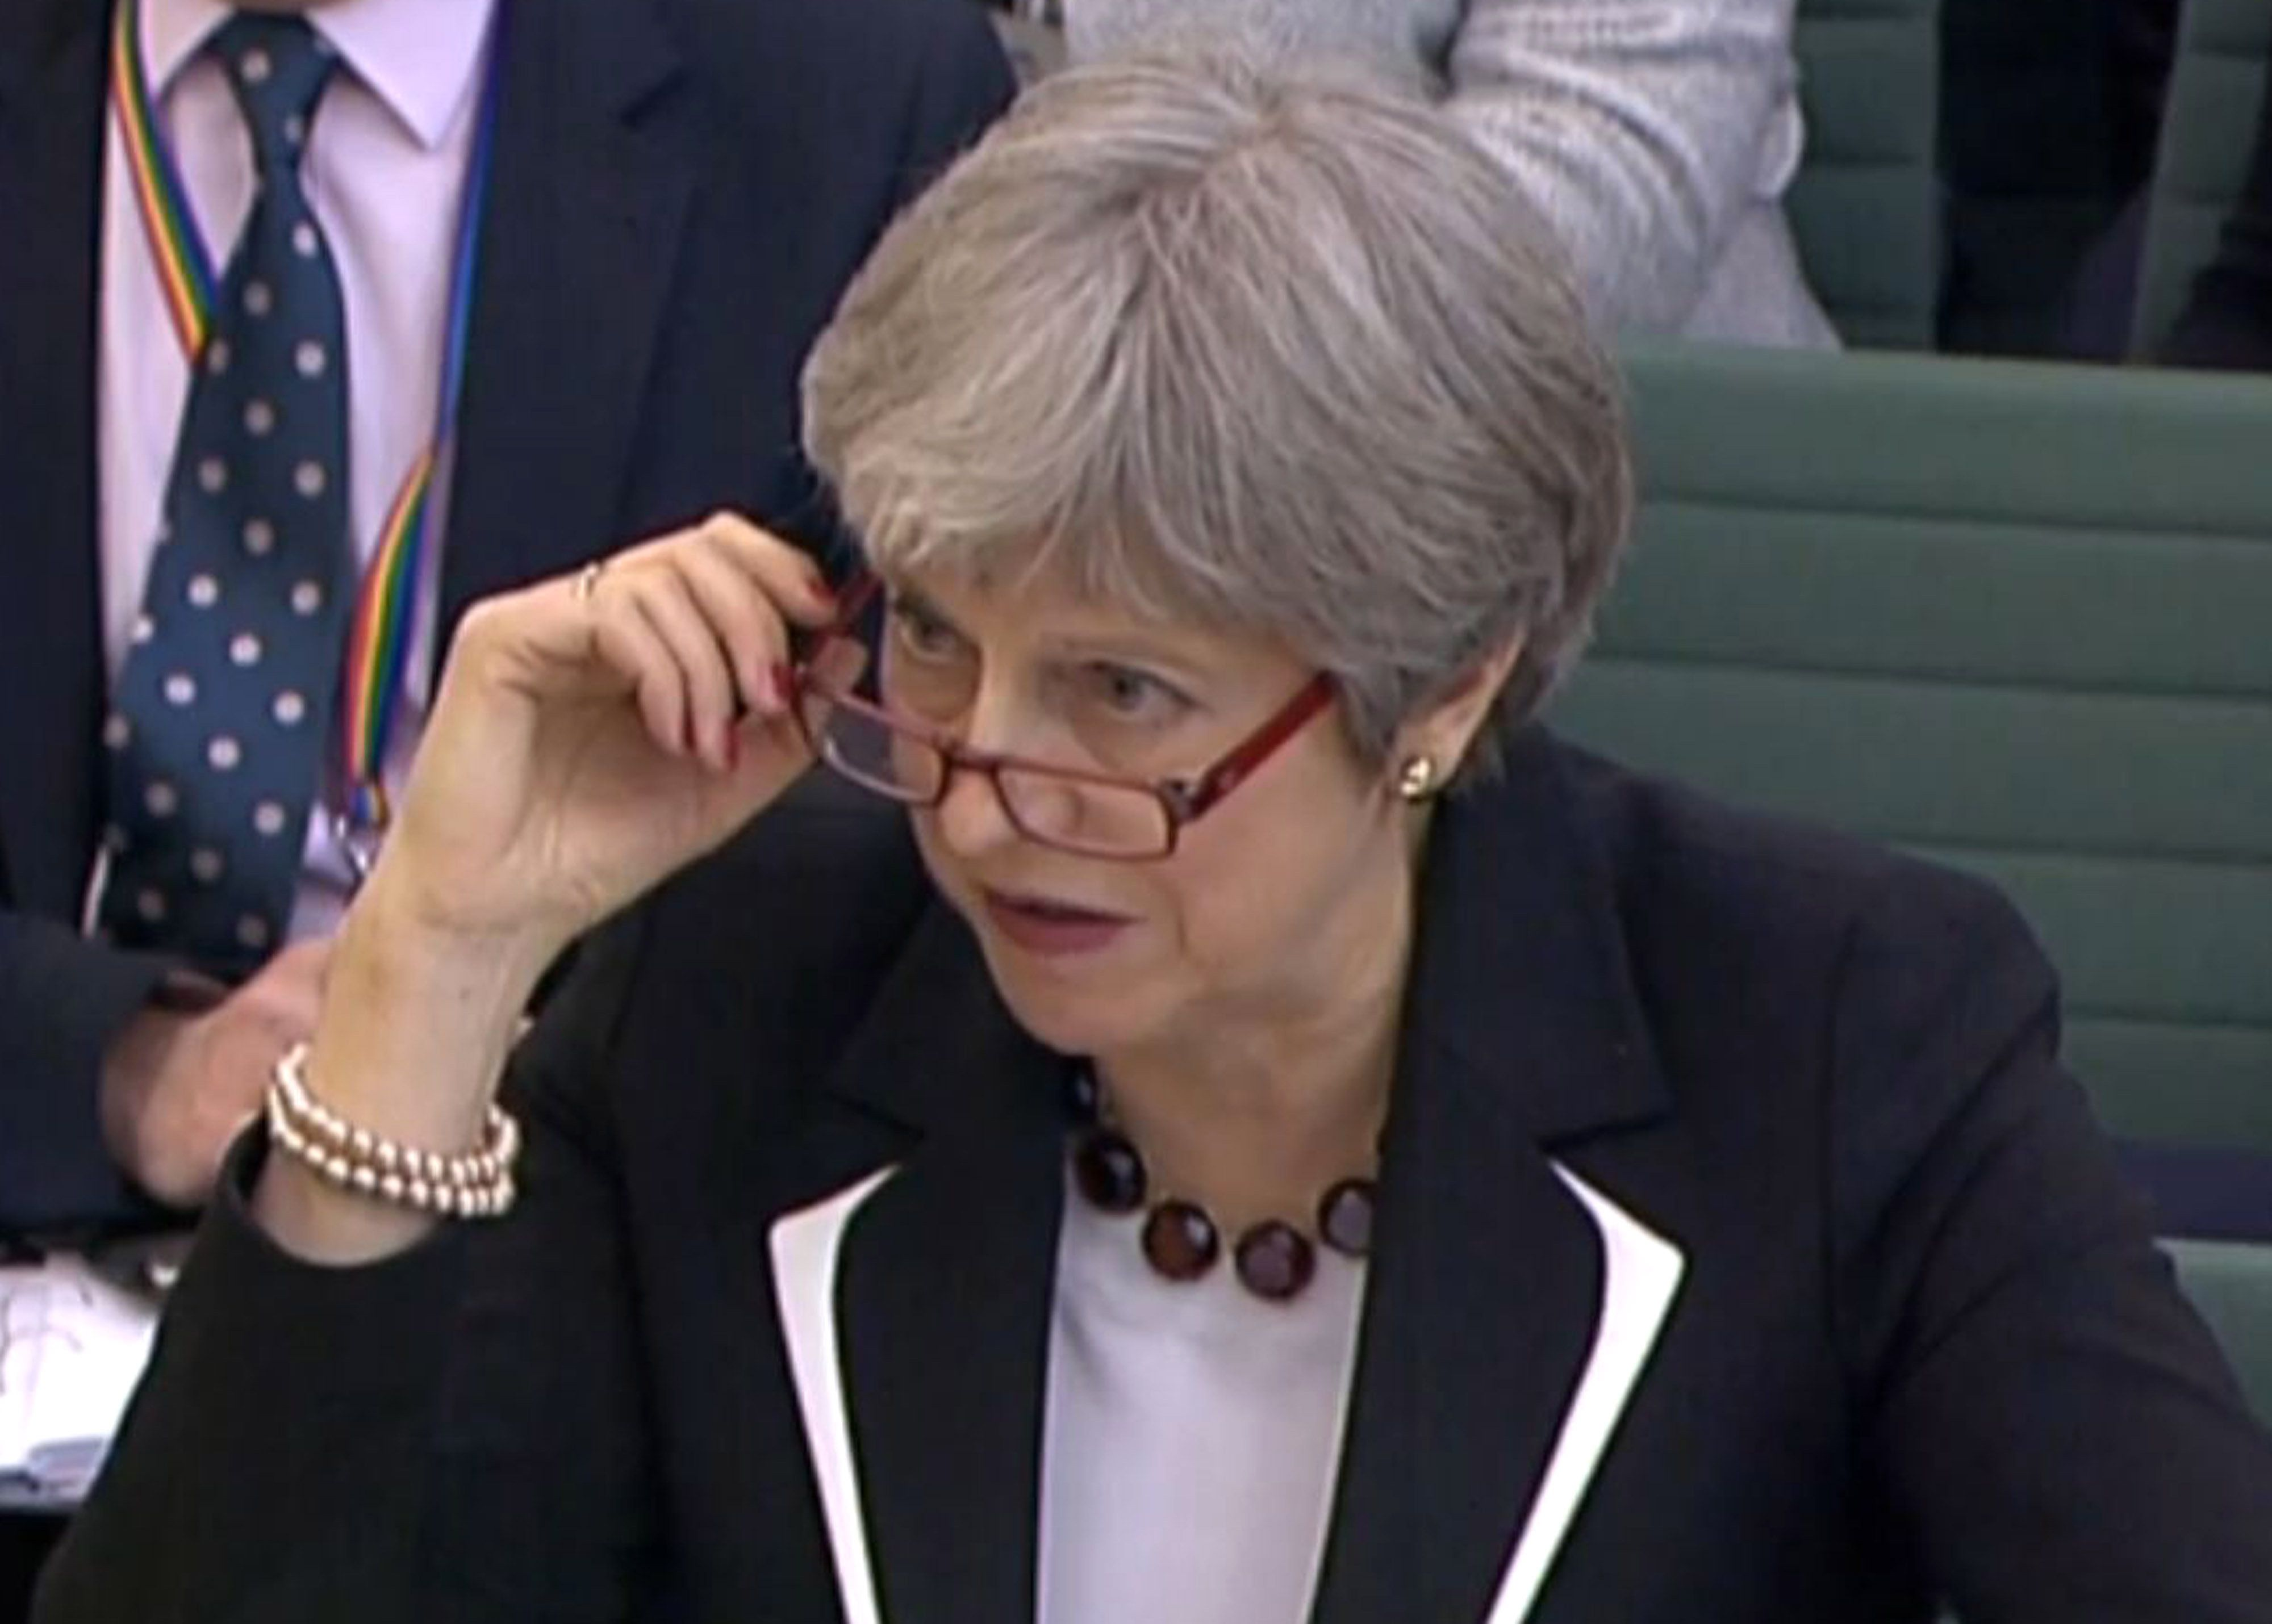 PM to look at 'multi-year' funding plan for health service — NHS